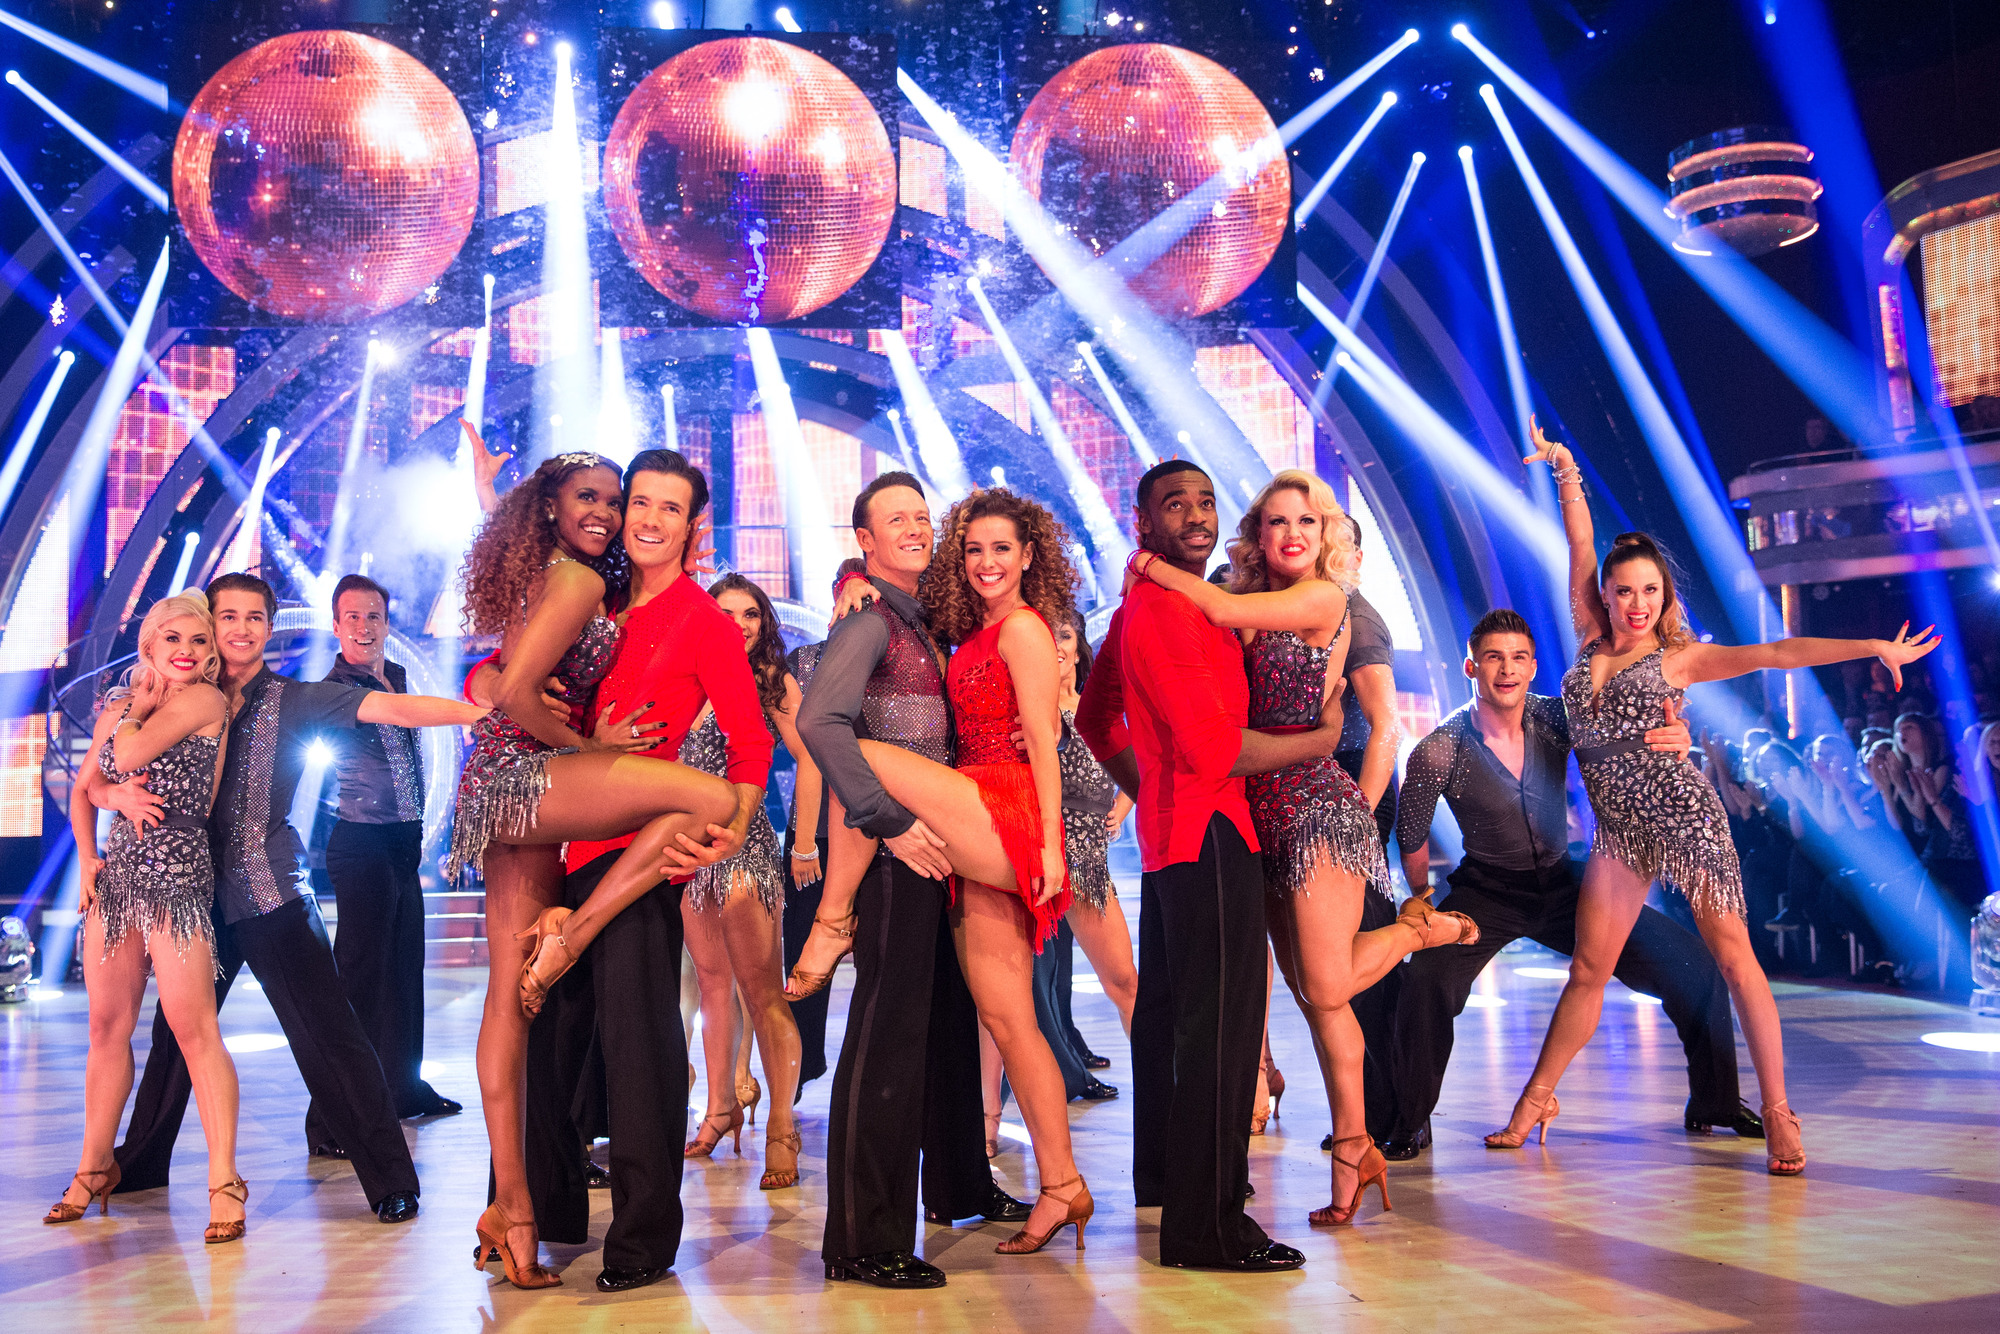 The Strictly Come Dancing contestants and professional dancers - (C) BBC - Photographer: Guy Levy